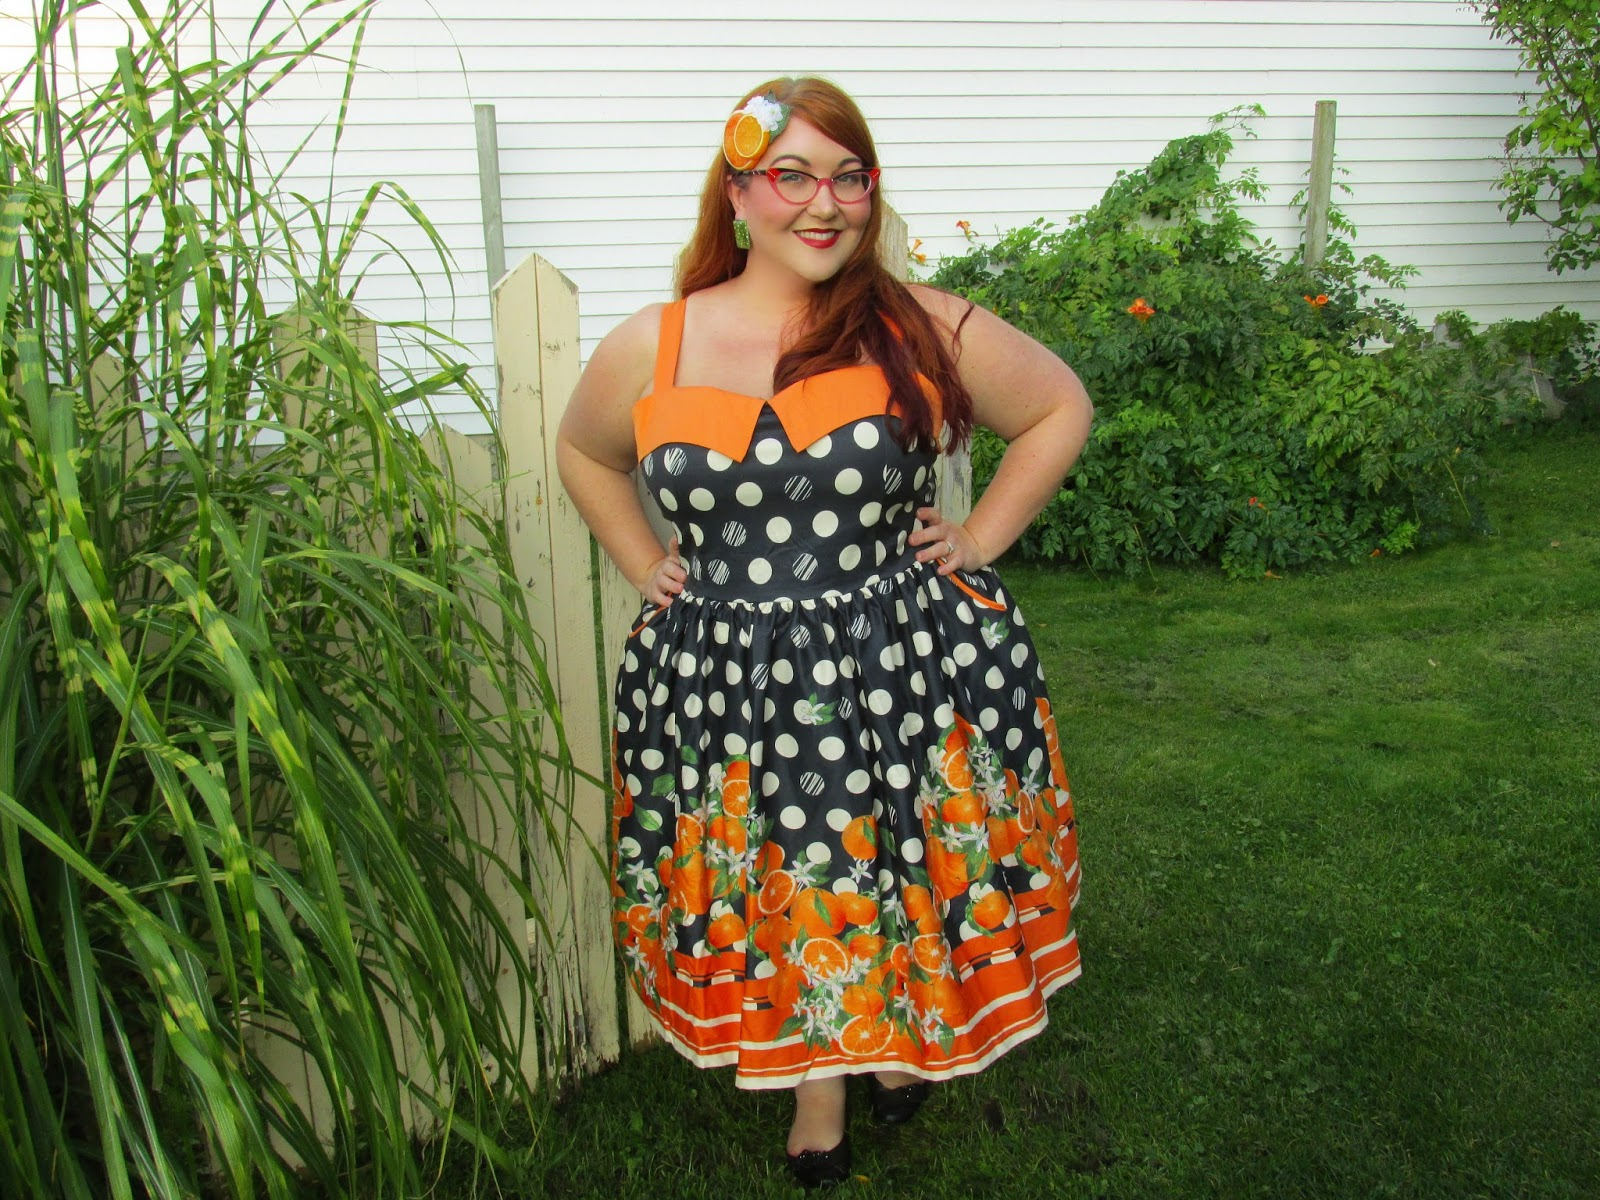 e7d8d454d727 Lindy Bop is one of my favorite vintage style clothing designers. They have  such a fabulous selection of retro styled dresses, tops, skirts,  accessories and ...